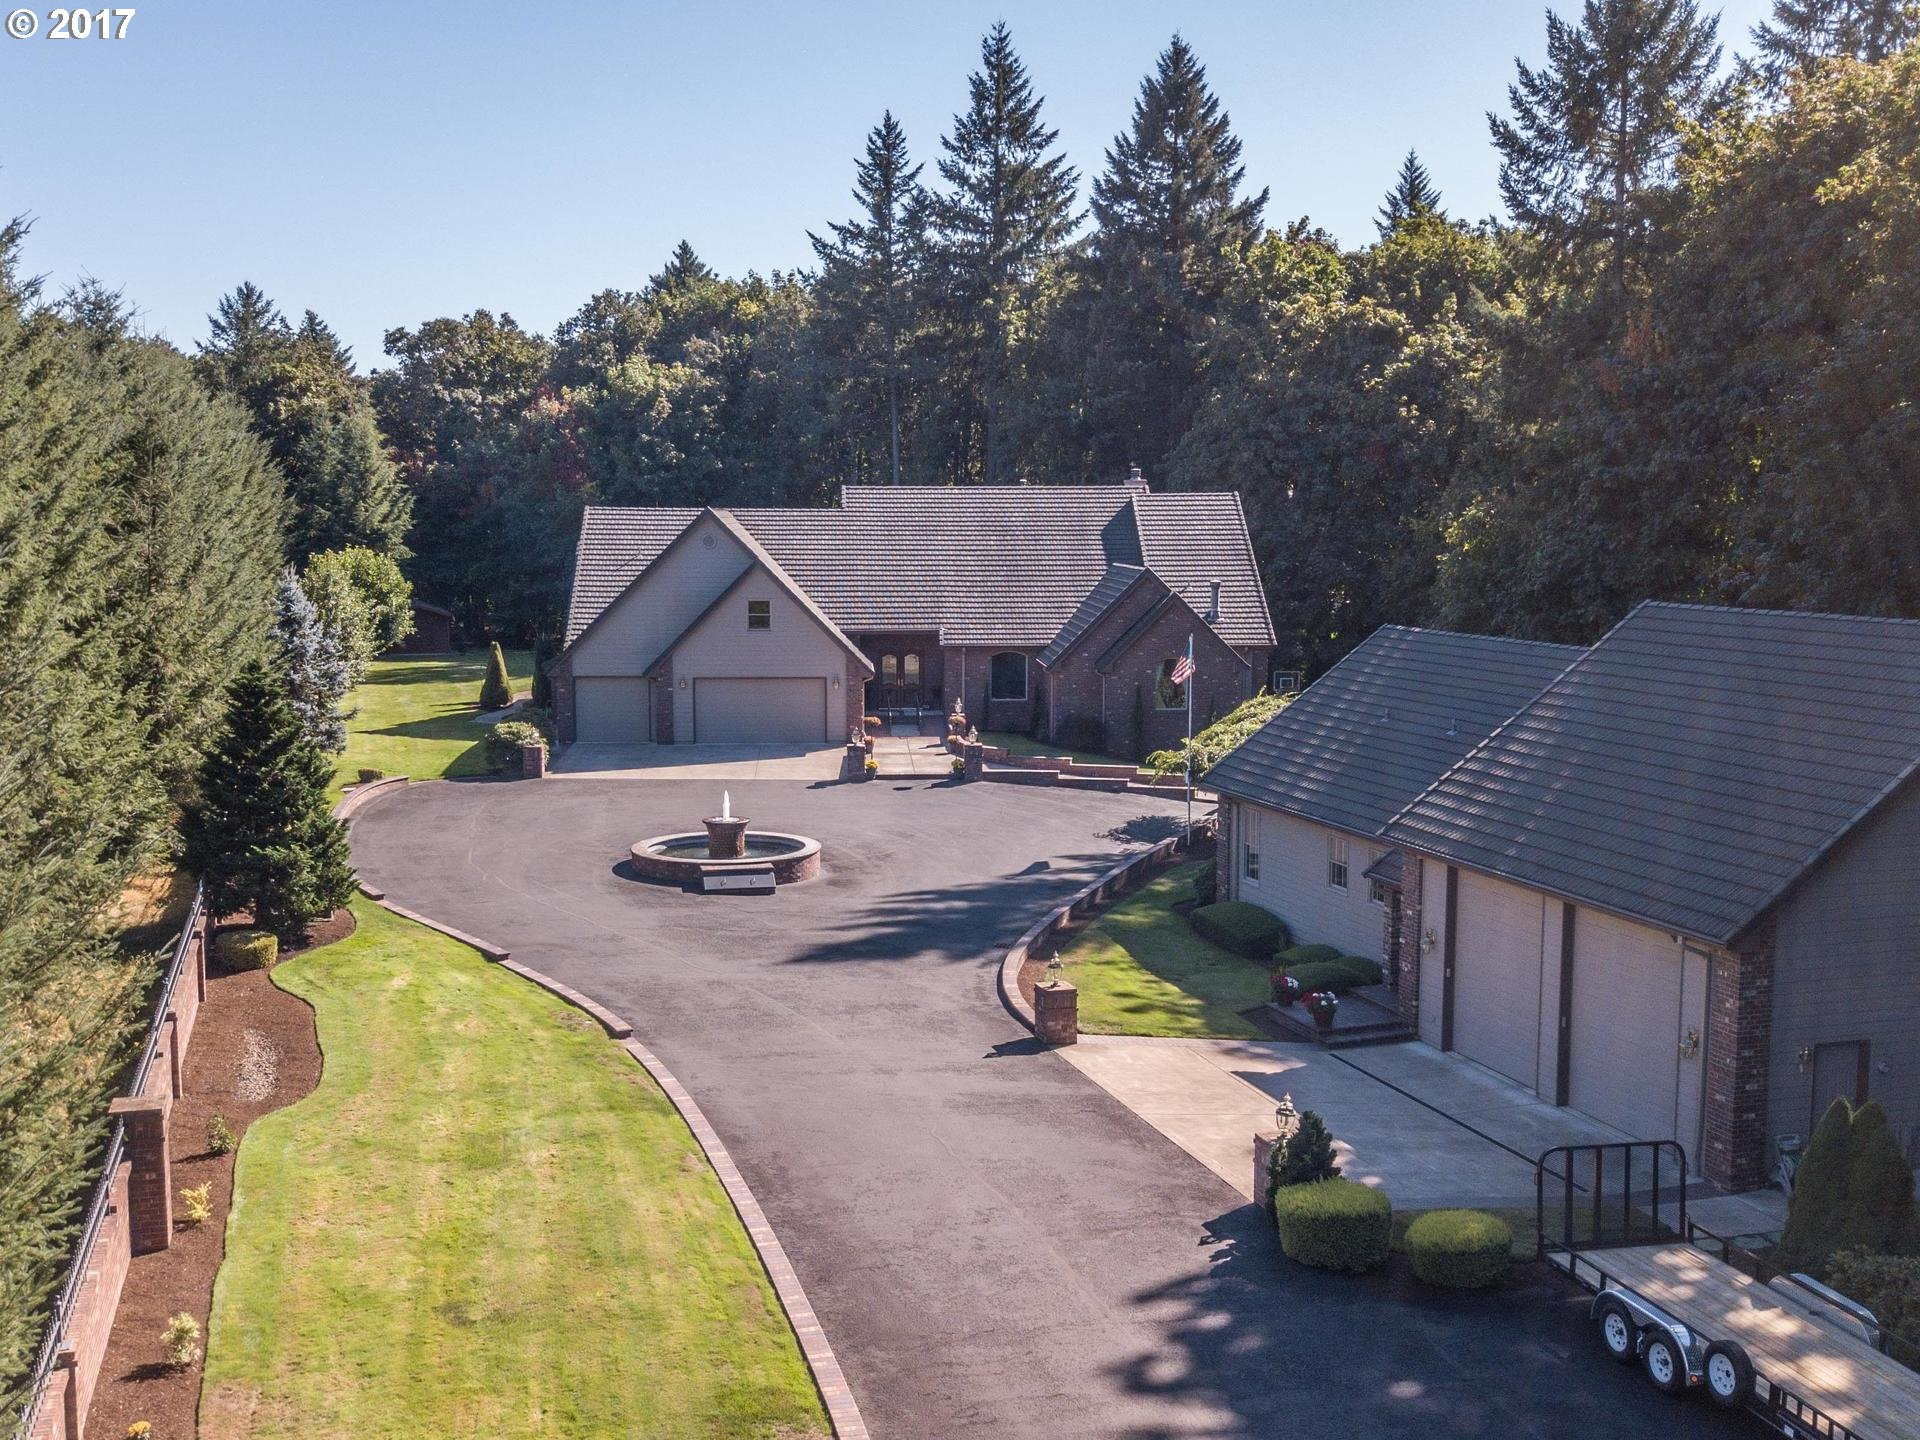 10550 S KELLAND CT, Oregon City OR 97045